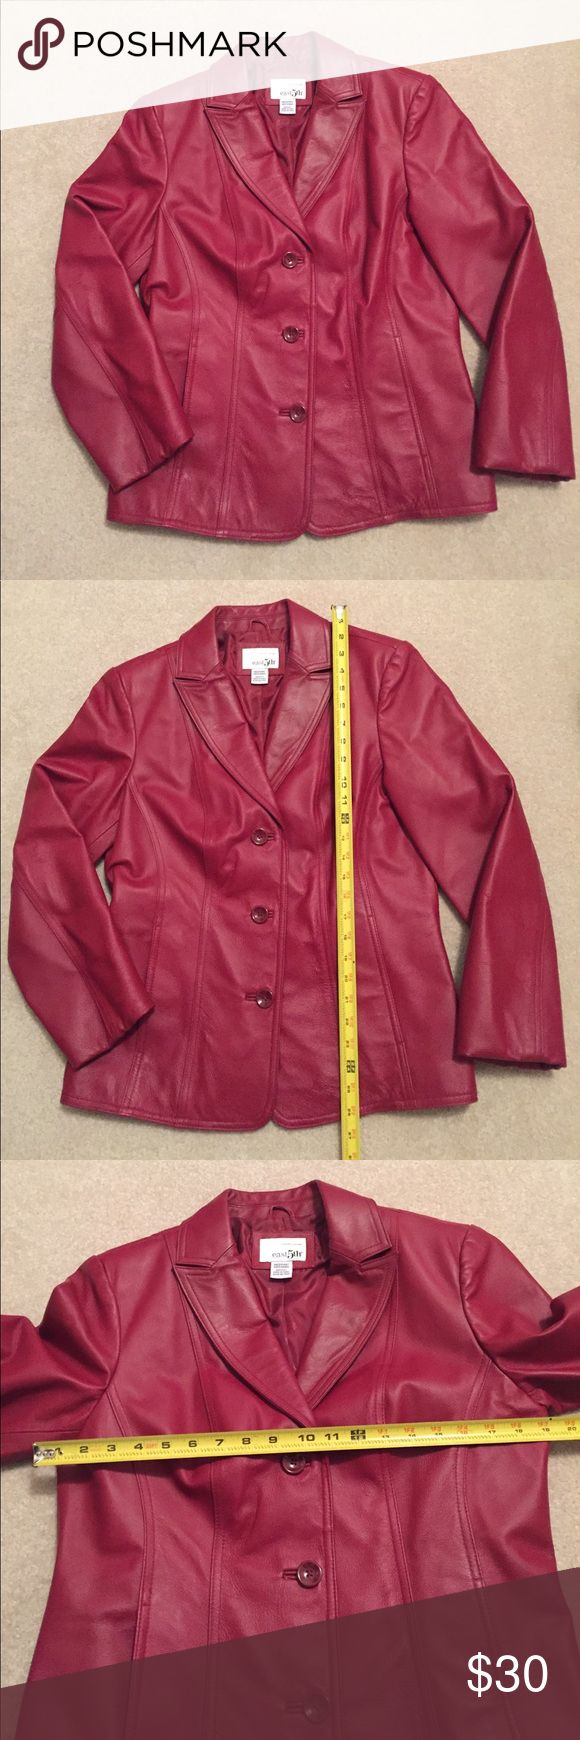 East 5th red leather jacket Red leather jacket, Leather